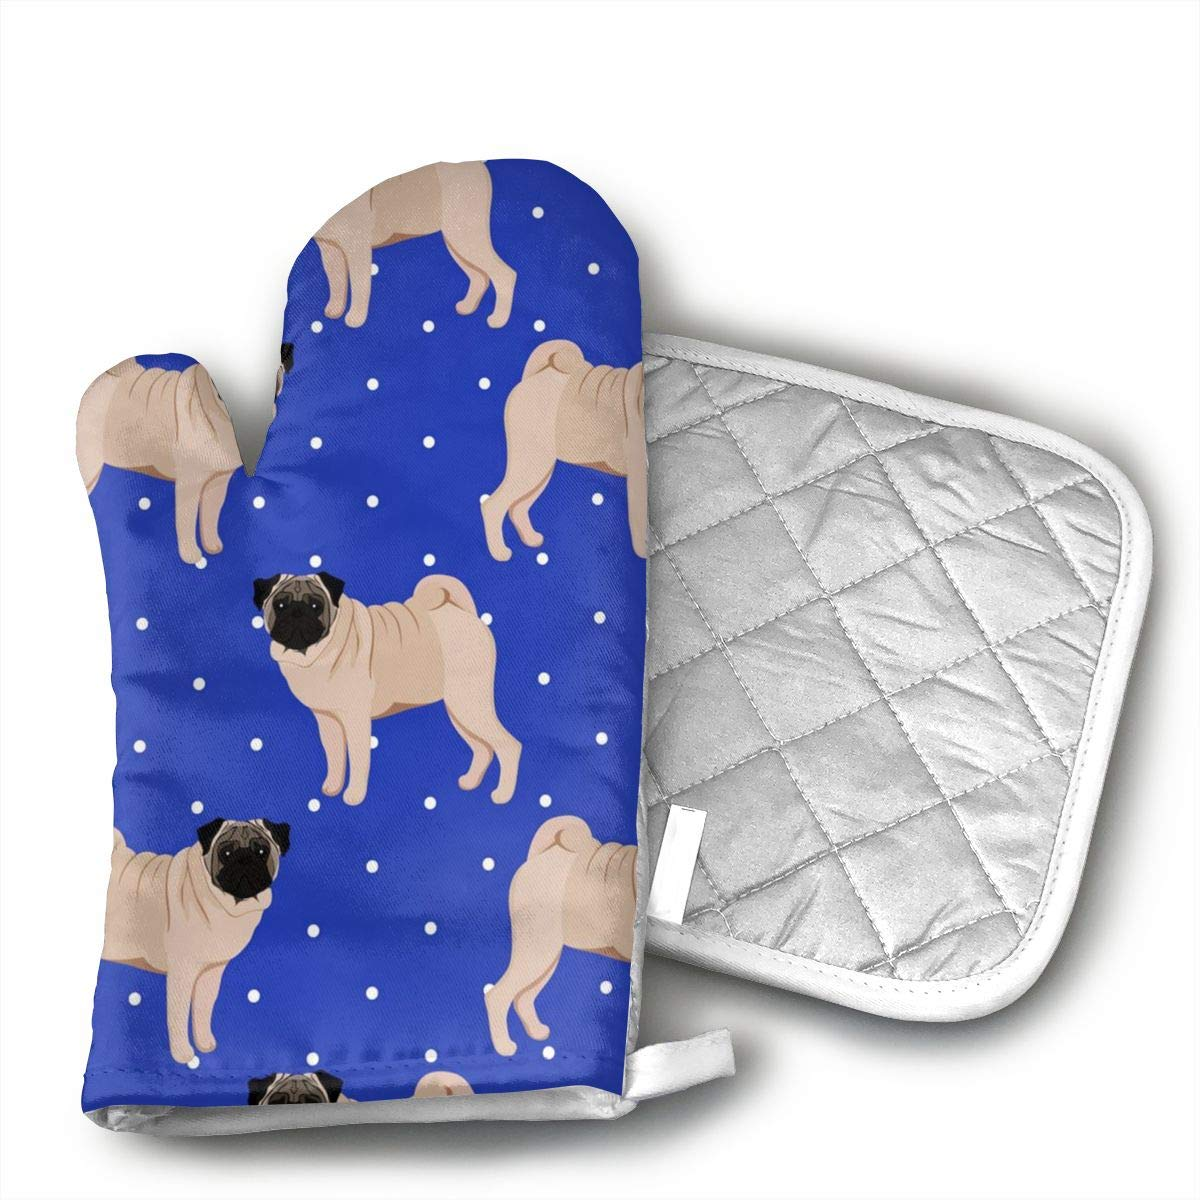 Wiqo9 Pug Seamless Pattern Oven Mitts and Pot Holders Kitchen Mitten Cooking Gloves,Cooking, Baking, BBQ.